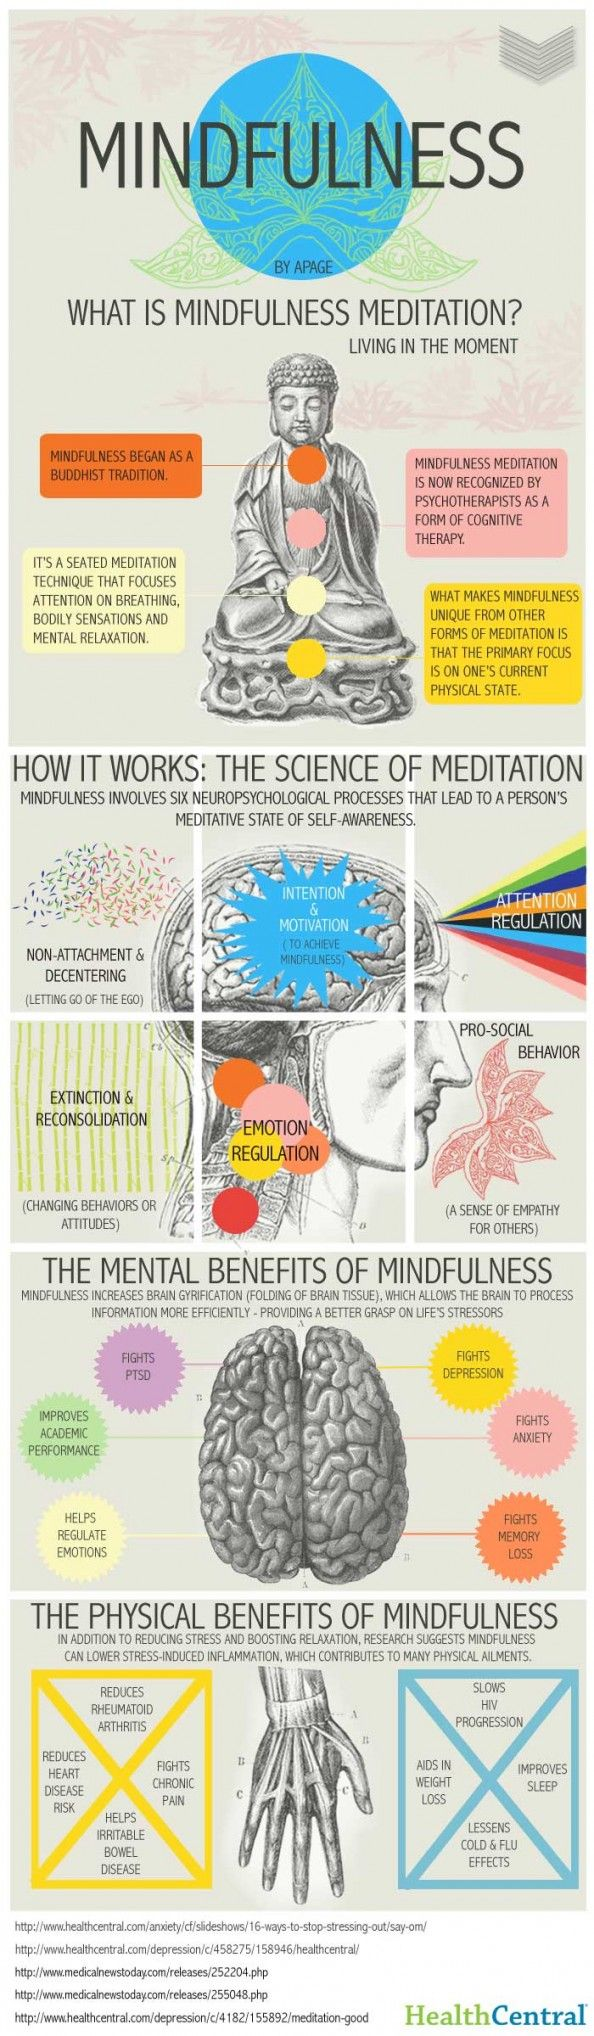 Mindfulness Infographic